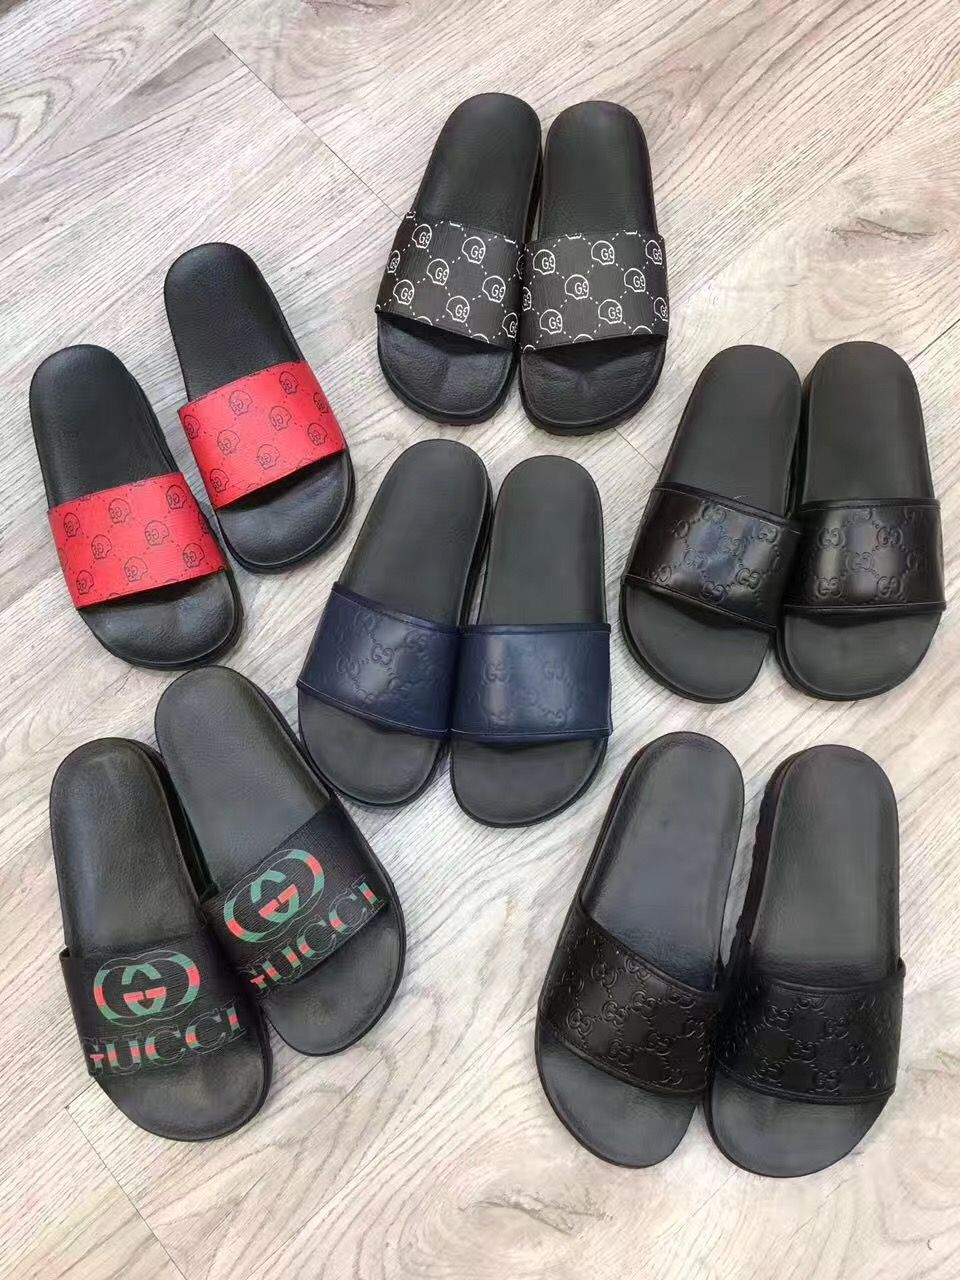 92a0d59a8570 Gucci man shoes casual slippers slides